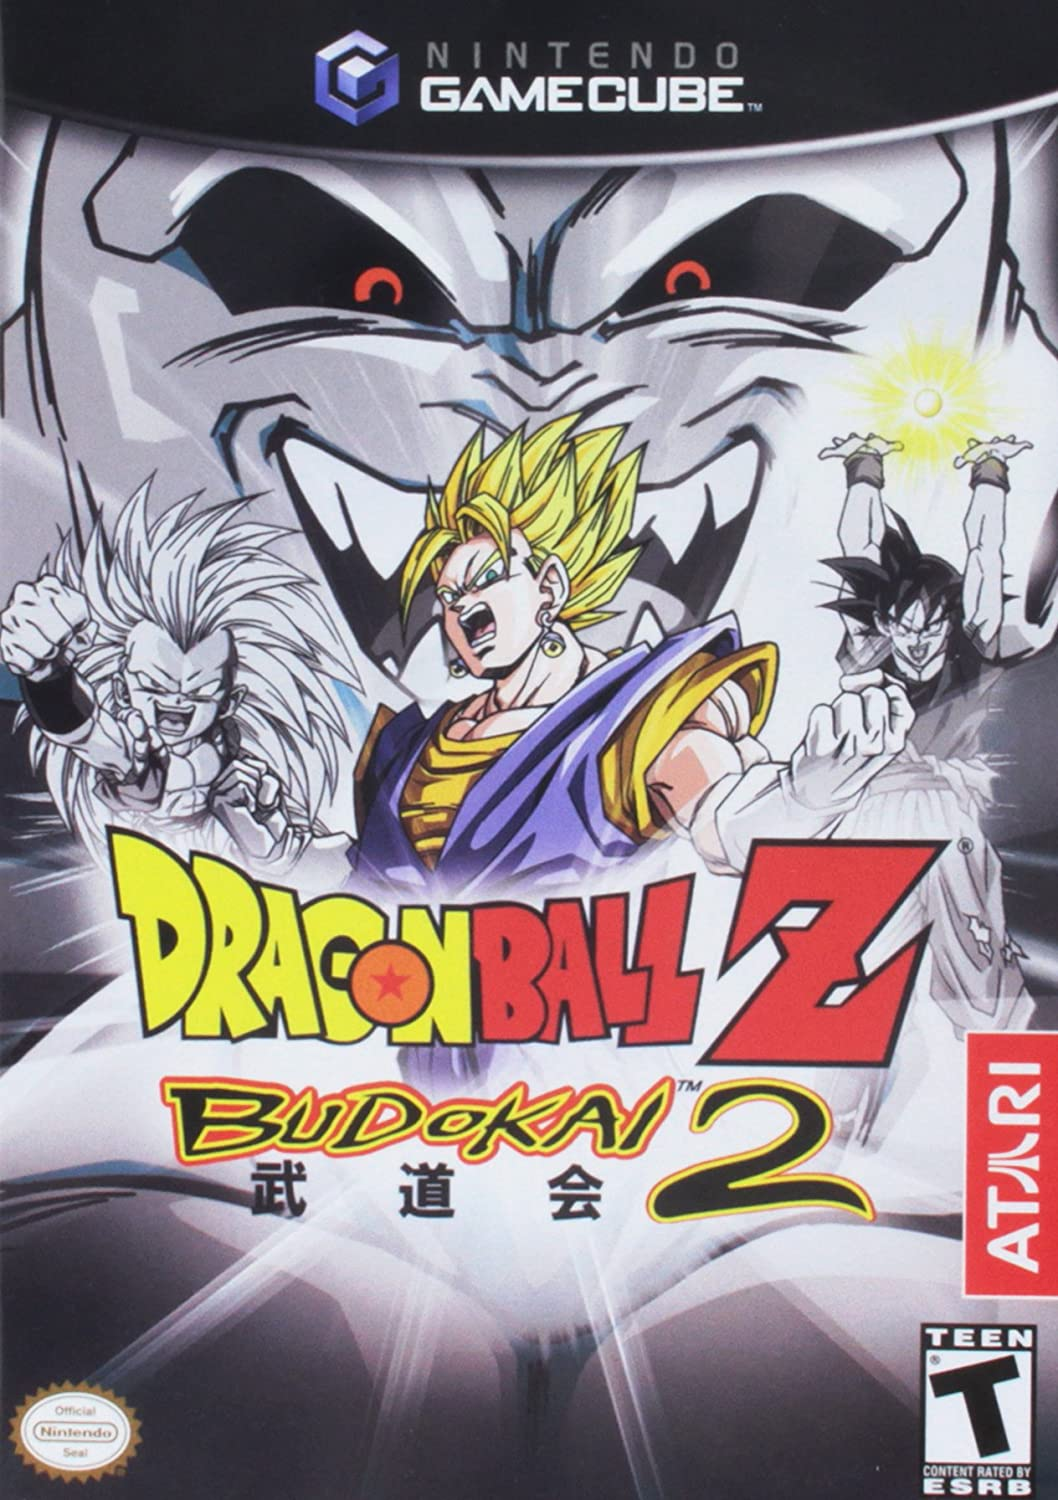 Image result for Dragon Ball budokai 2 gamecube